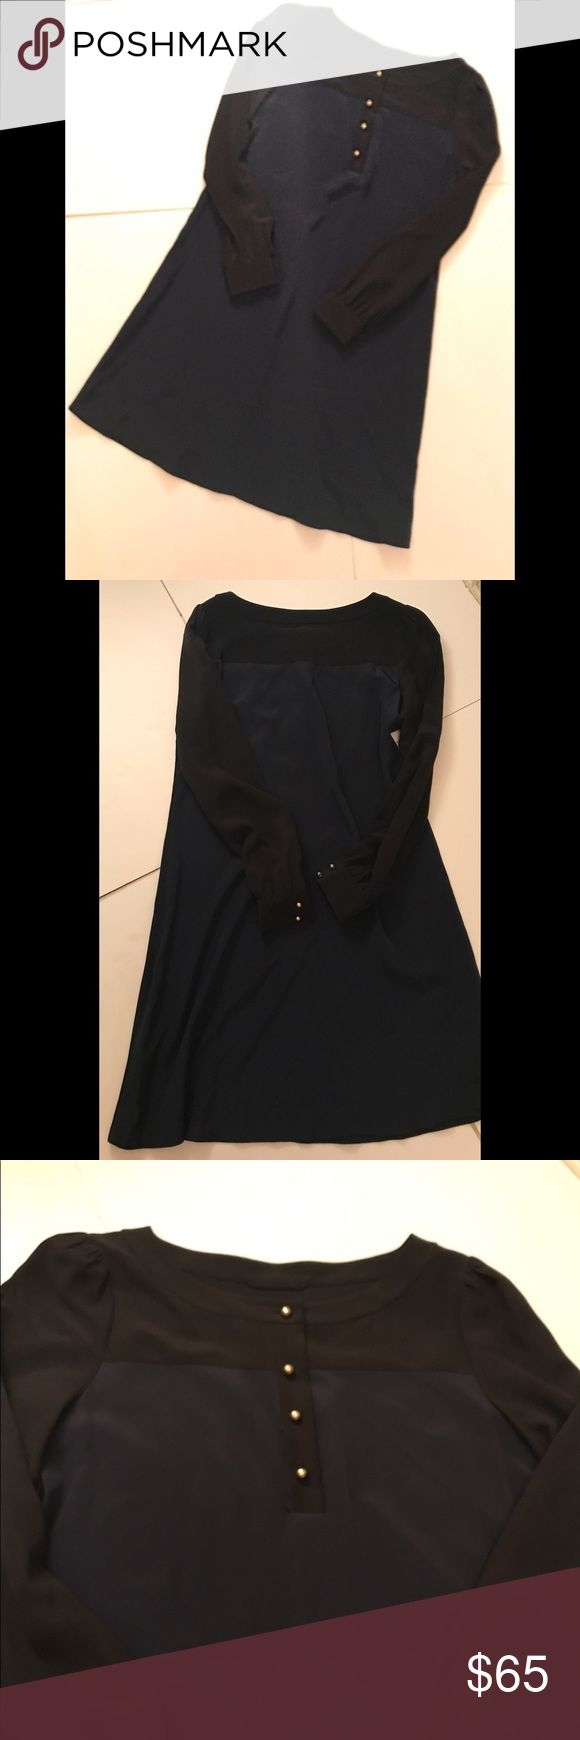 """Kate Spade ♠️ Long Sleeve Dress End of season sale! Beautiful dress in excellent condition. Black and navy dress with gold buttons. 👌Length 39"""" Bust 36"""" kate spade Dresses"""